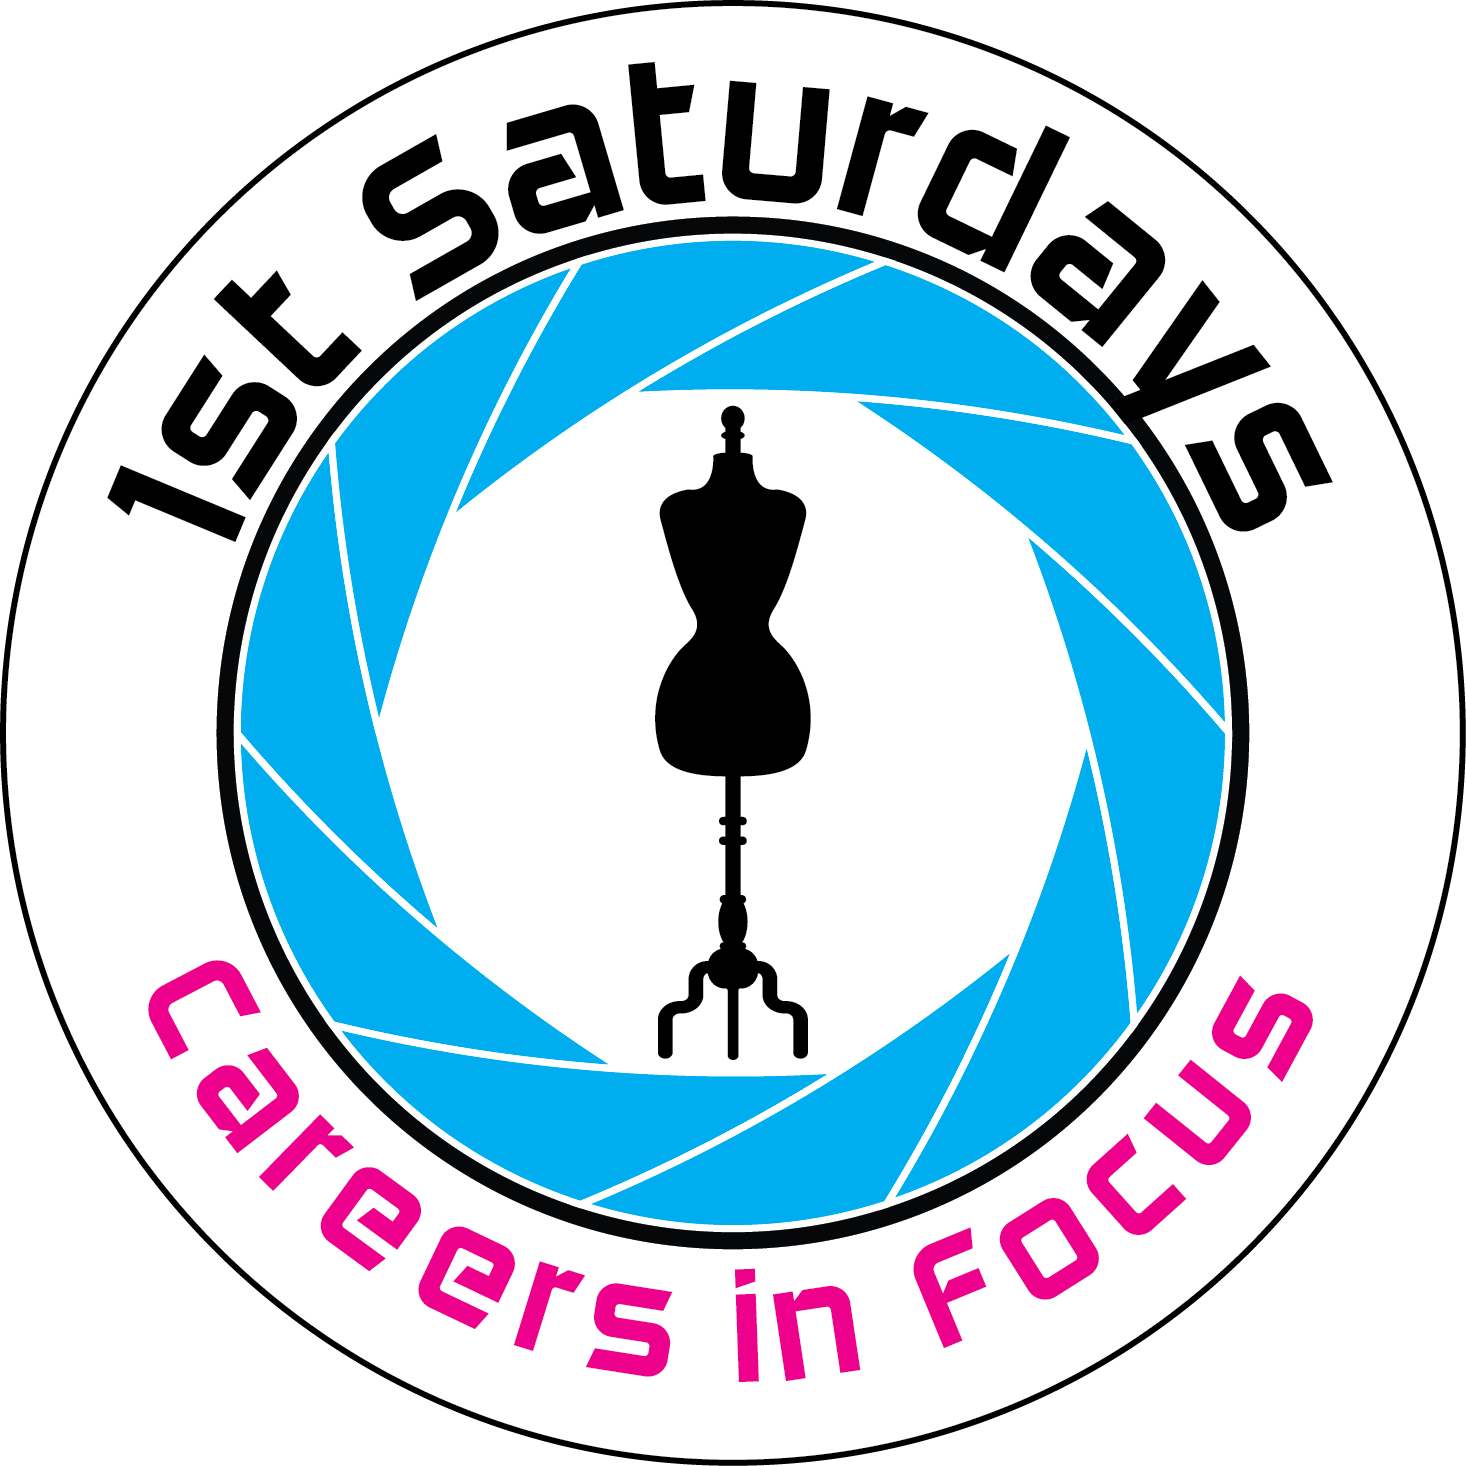 1st Saturdays: Careers in Focus Attendee (Fashion)